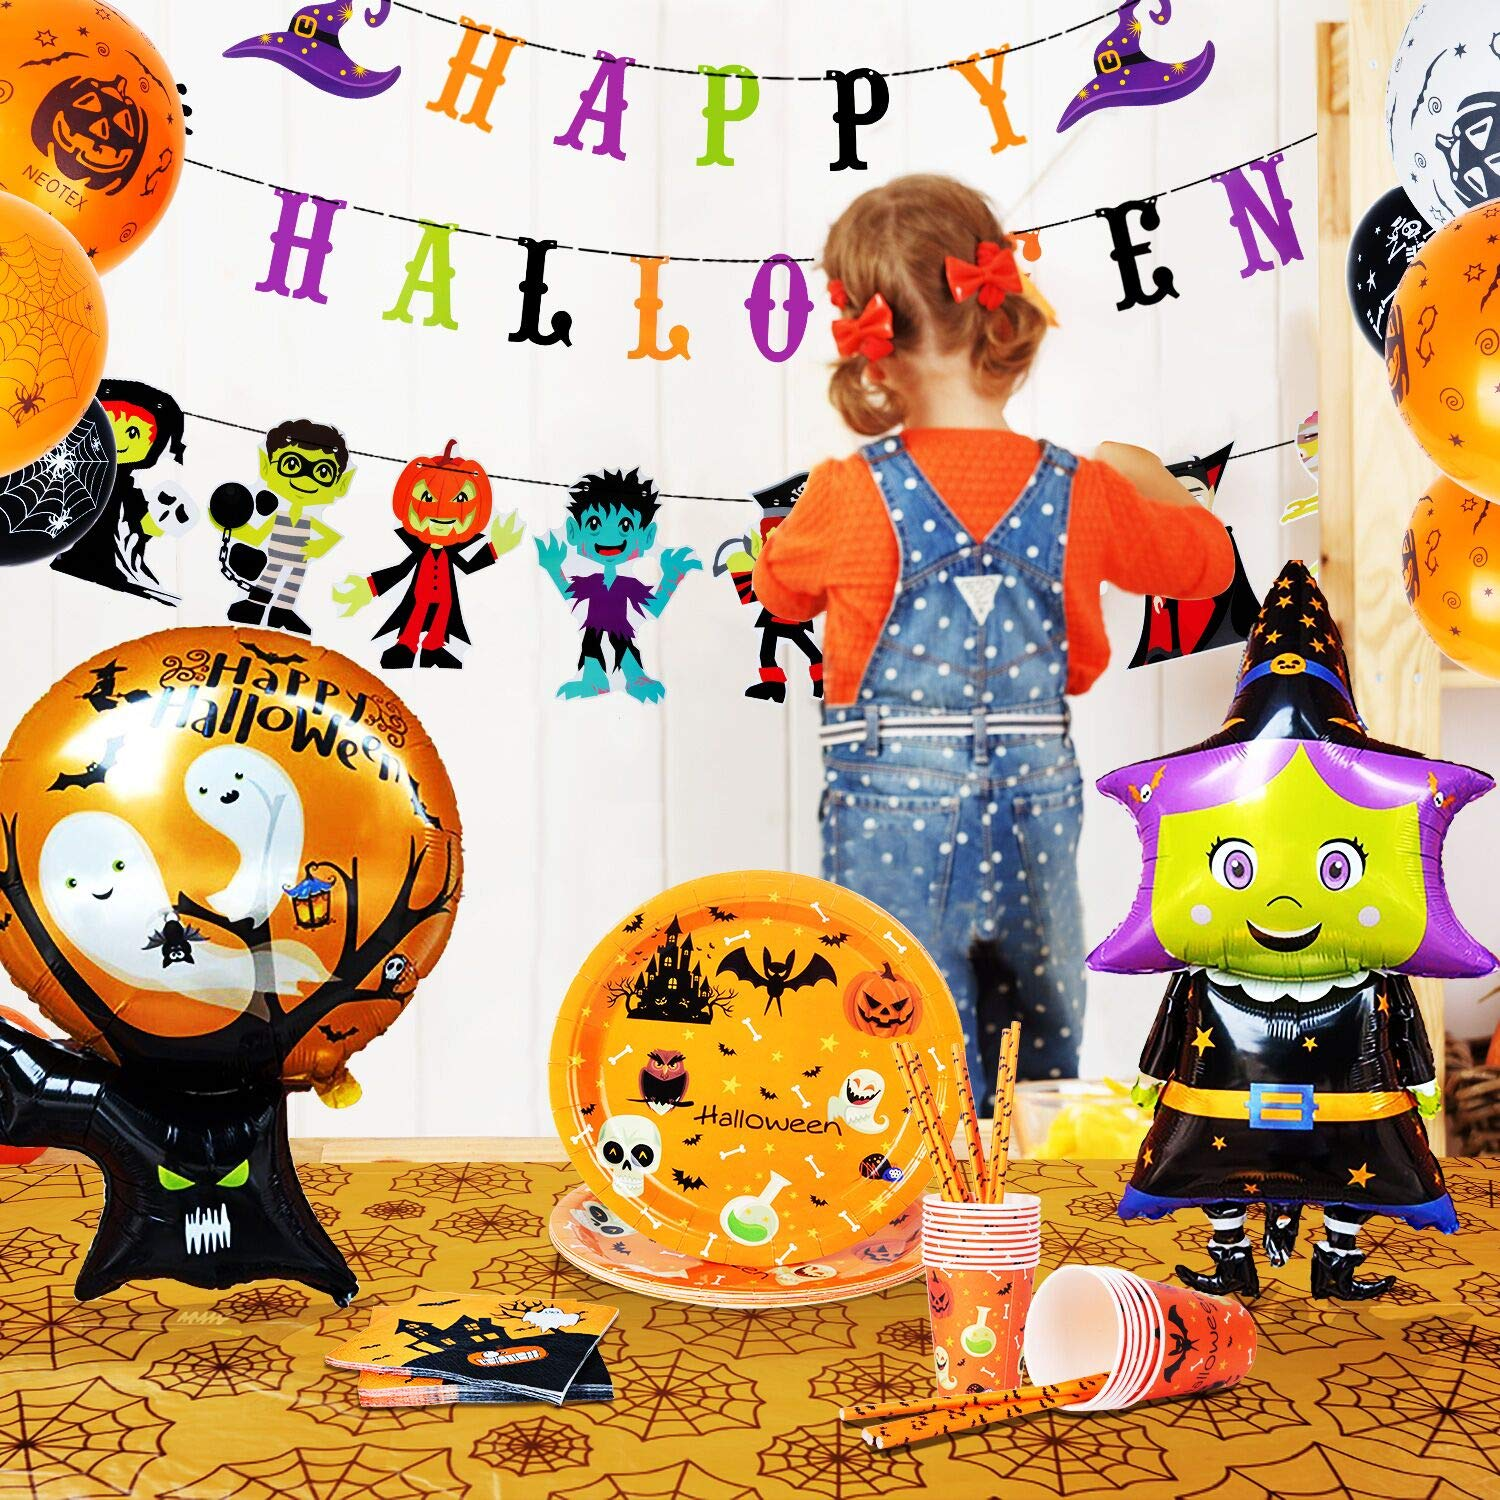 Halloween Party Decorations for Kids - Halloween Party Supplies Set - 91 Pieces(Serves 16) Includes Happy Halloween Banners Witch Balloons Tablecloth Plates Napkins Cups Straws by ORIENTAL CHERRY